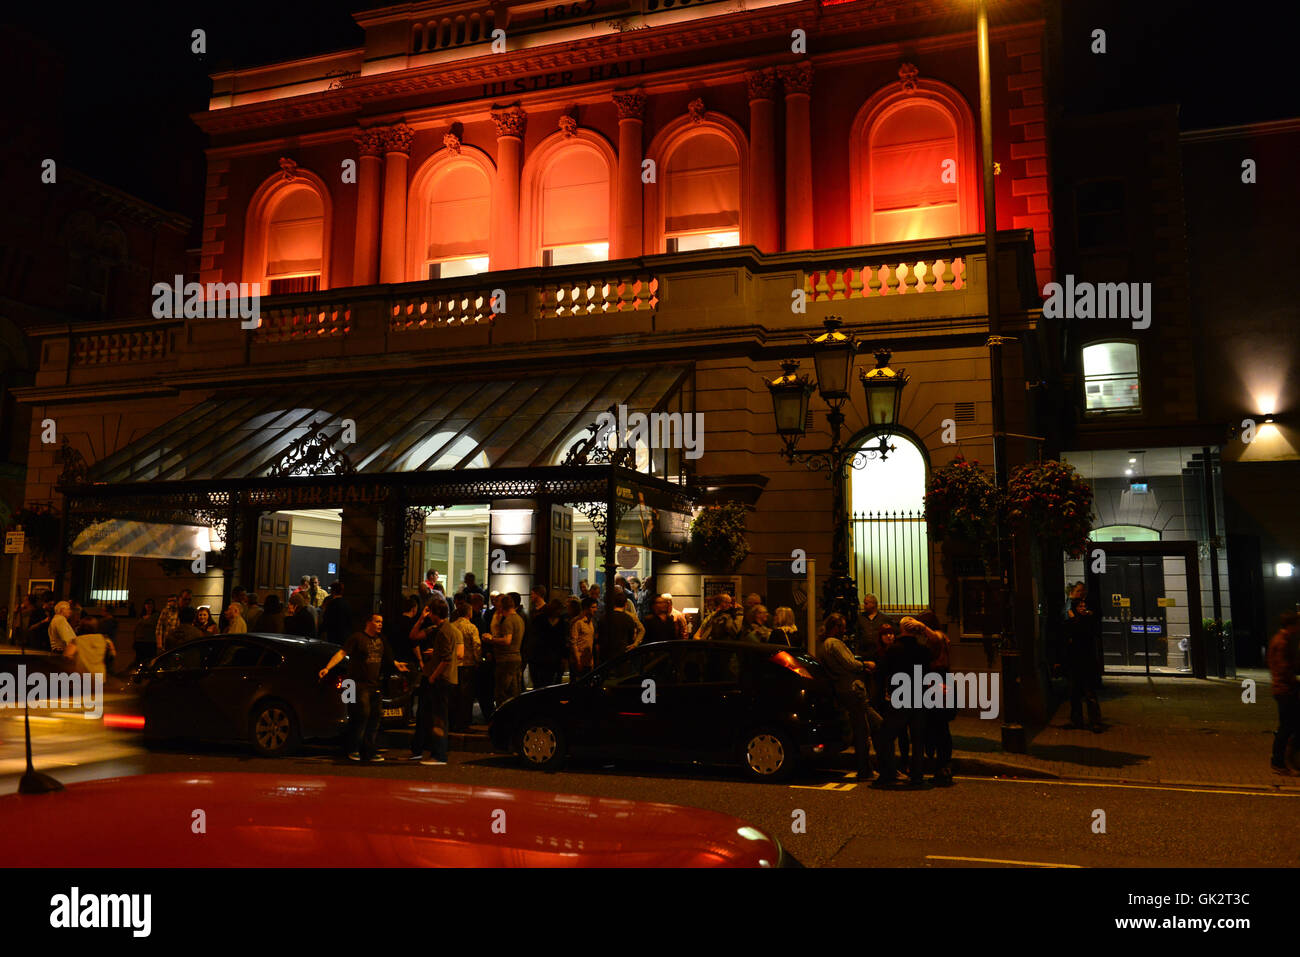 Ulster Hall at night after a concert, Belfast - Stock Image